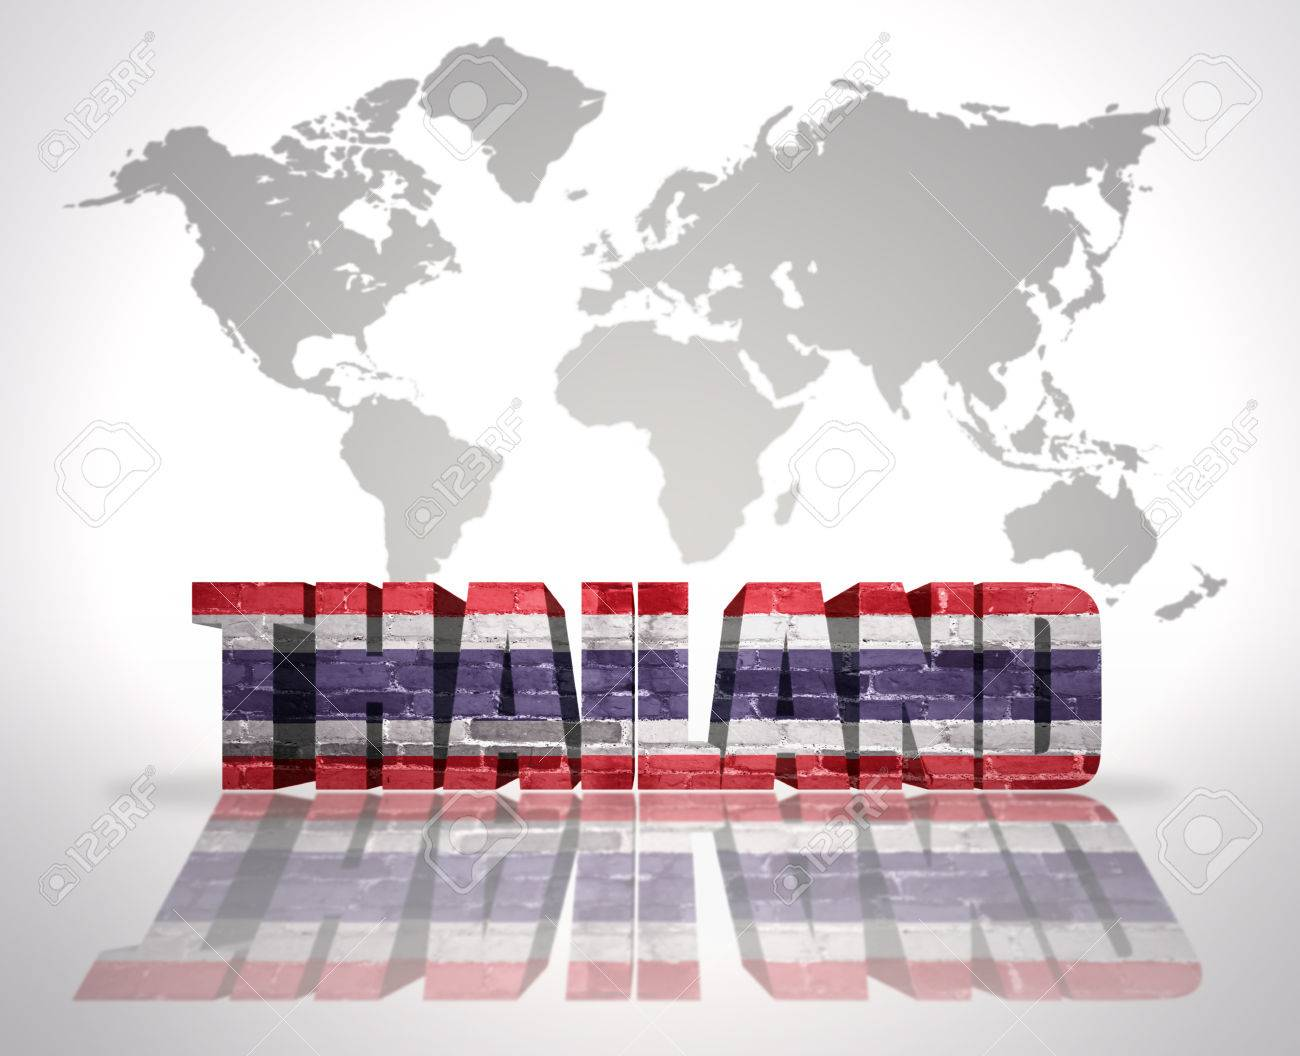 Word thailand with thai flag on a world map background stock photo stock photo word thailand with thai flag on a world map background gumiabroncs Image collections